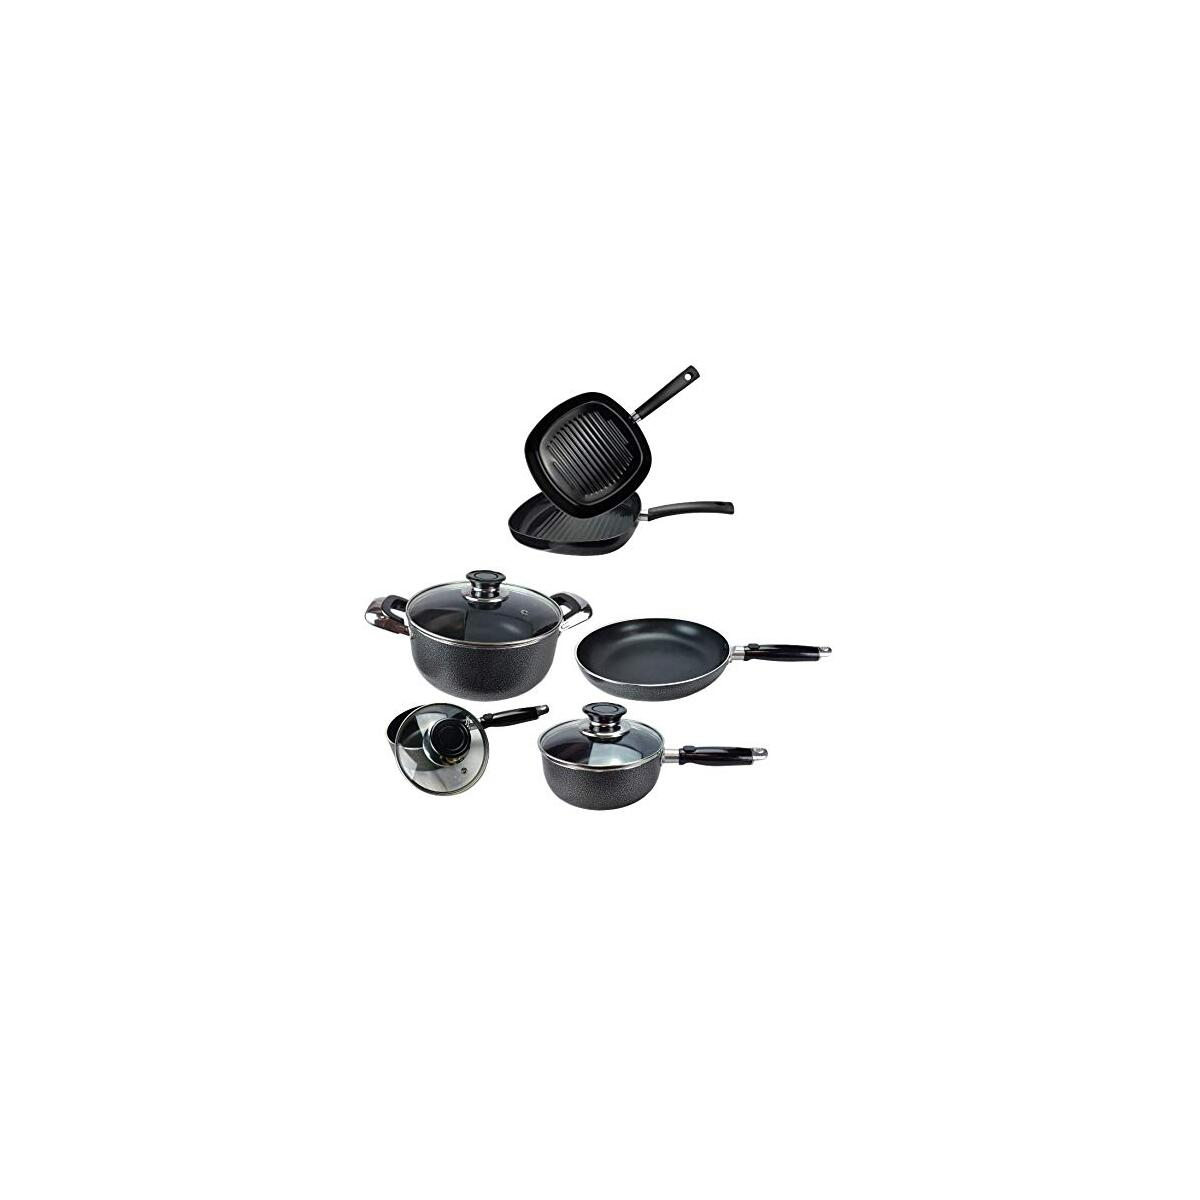 Nonstick Cookware Pots and Pans Set Dishwasher Safe, Black (8 PCS SET)